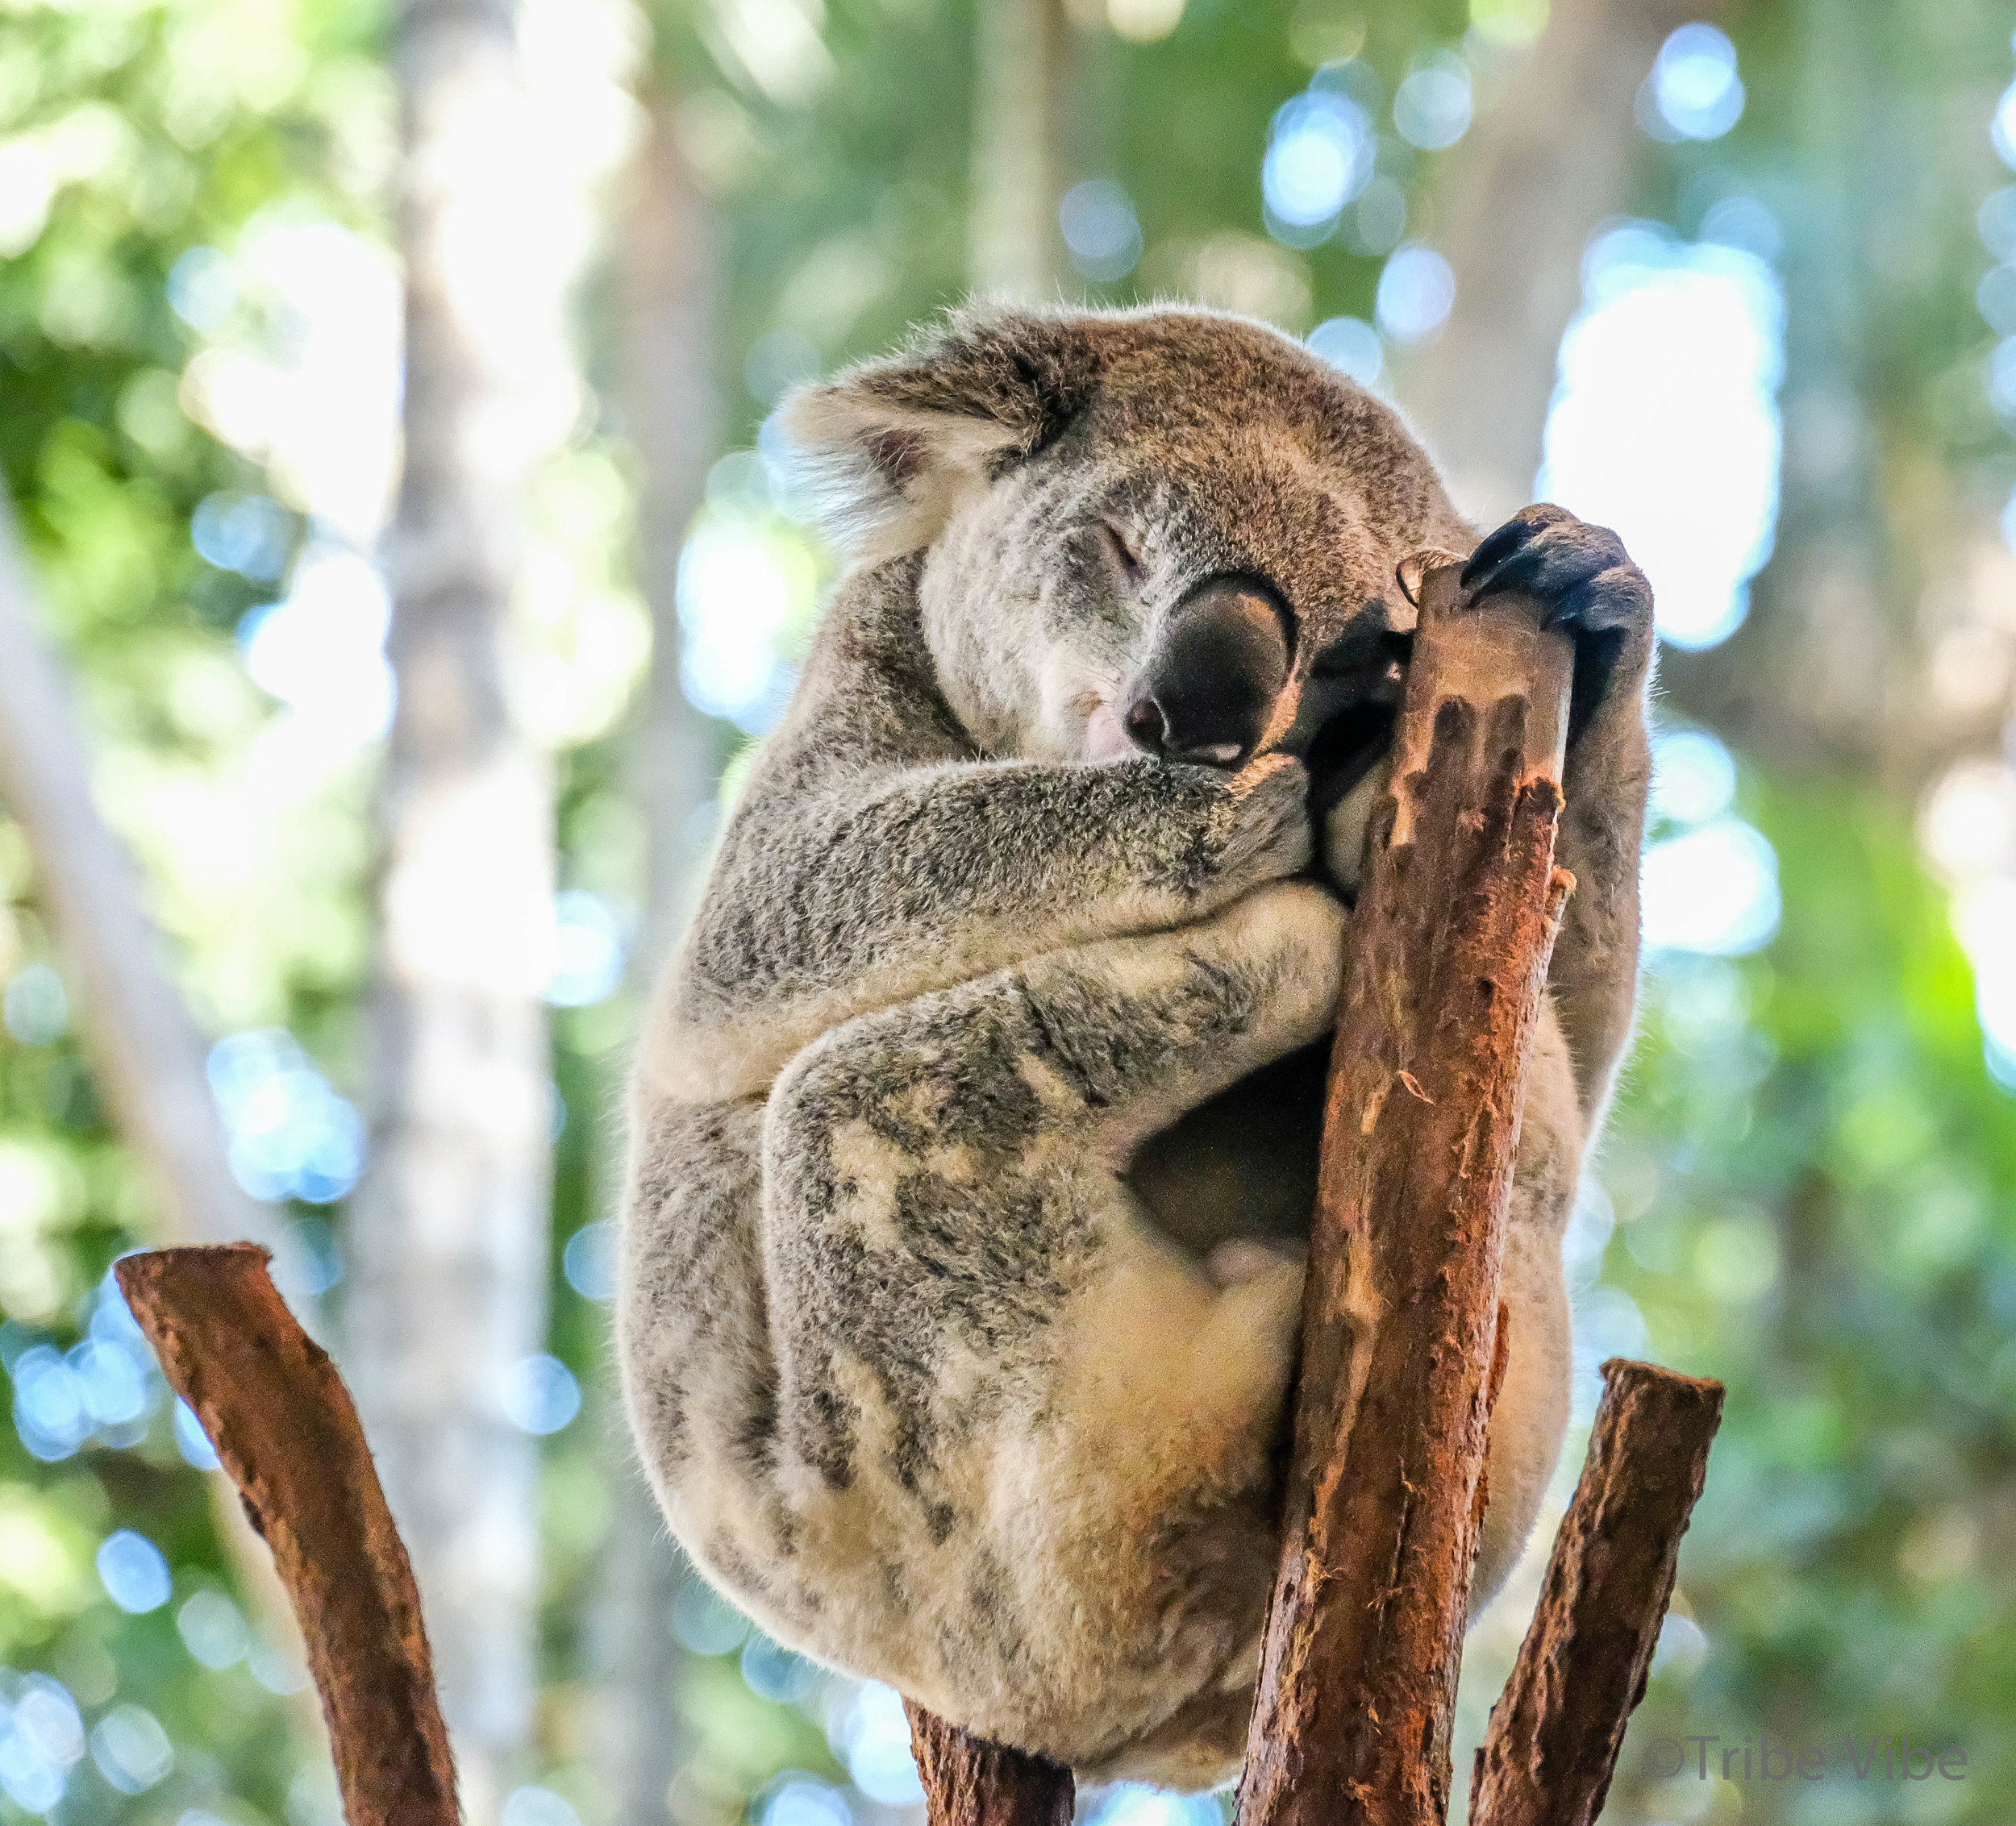 Sleeping Koala at the Lone Pine Koala Sanctuary in Brisbane, Australia.